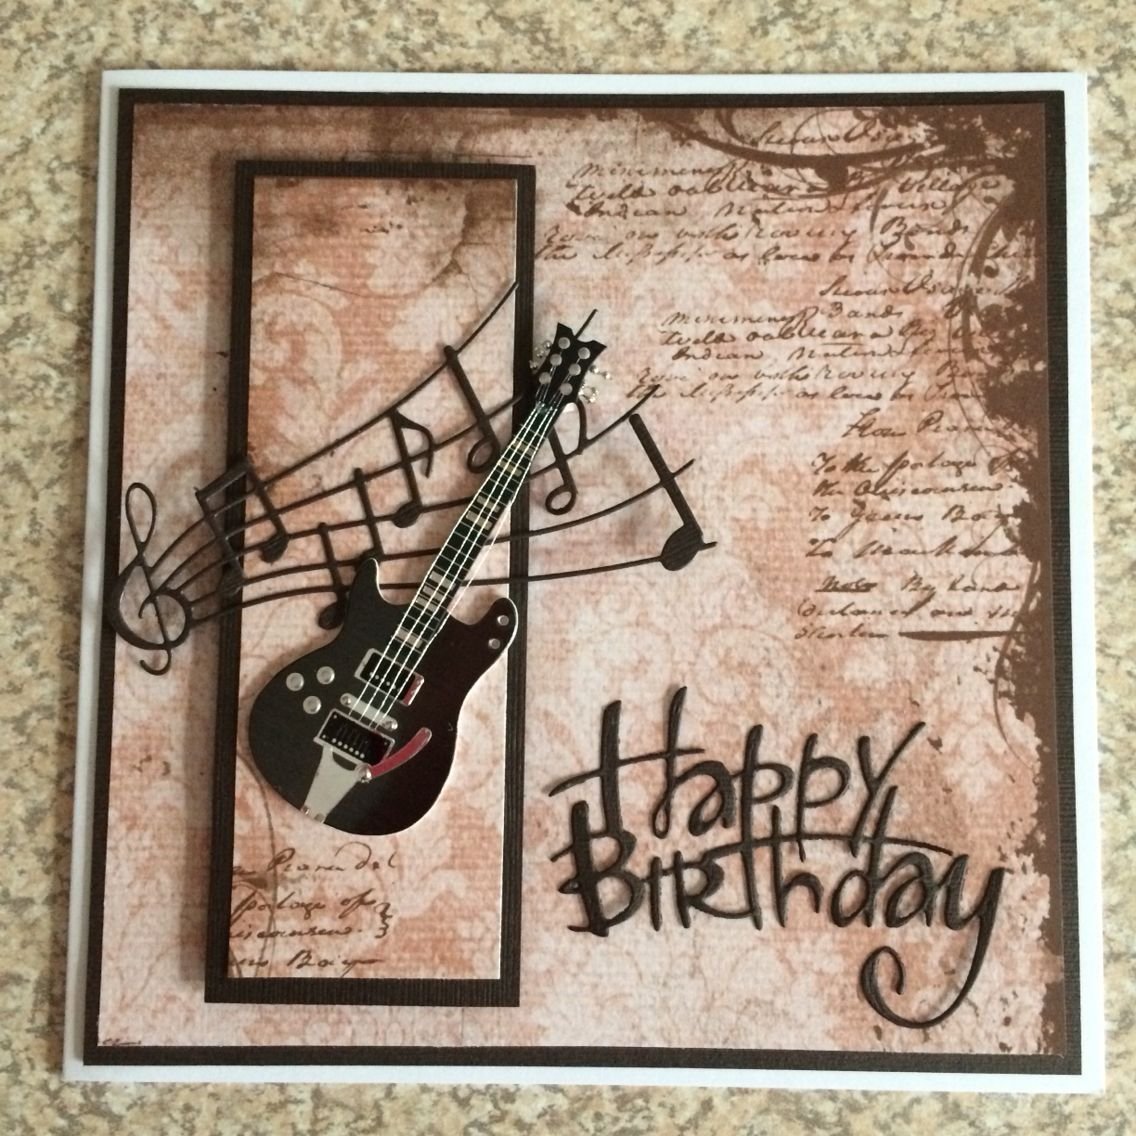 Happy birthday guitar greetings card cards music pinterest happy birthday guitar greetings card bookmarktalkfo Images